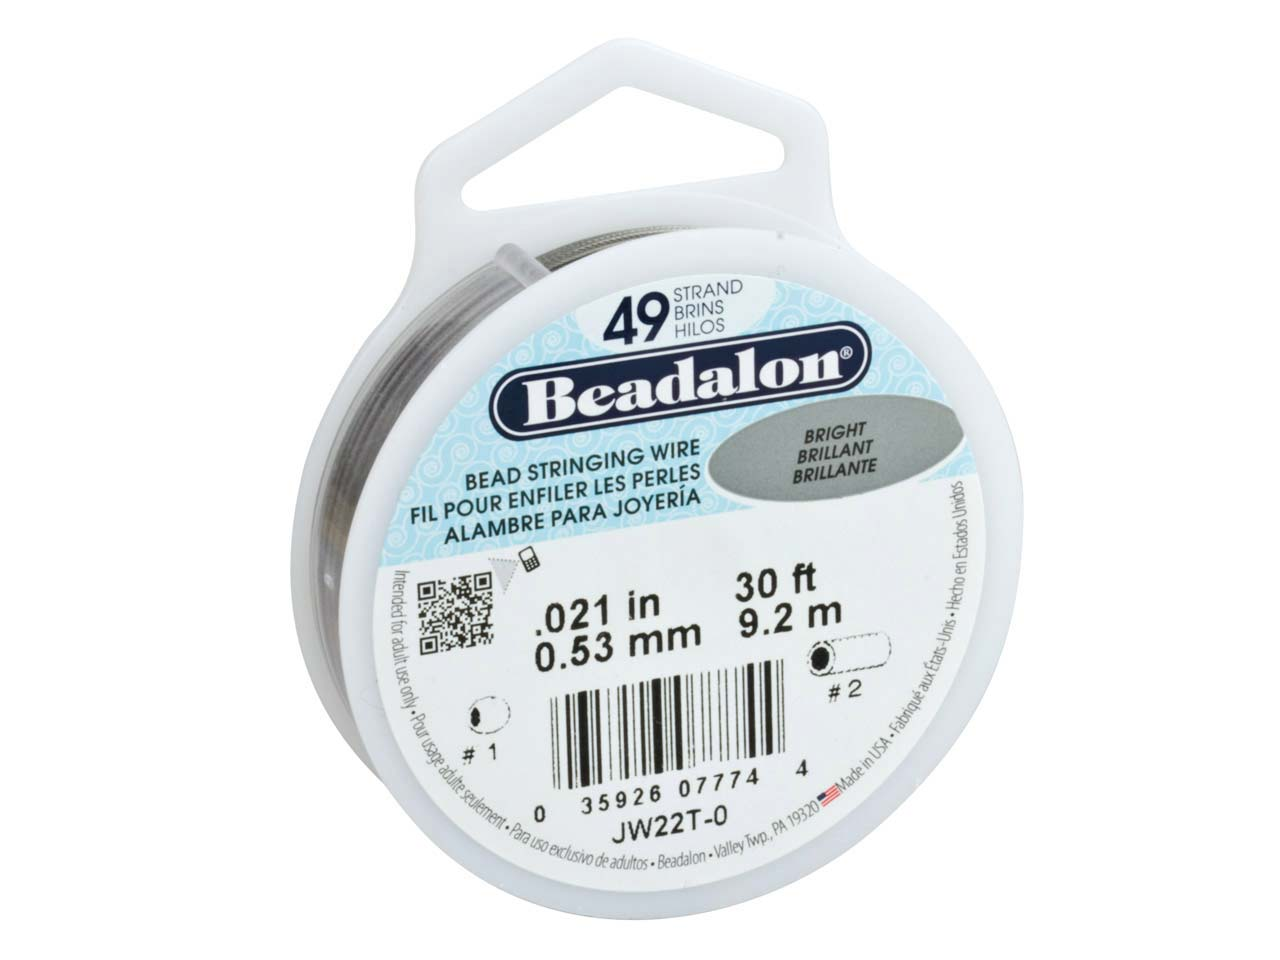 Beadalon 49 Strand Bright 0.53mm X 9.2m Wire